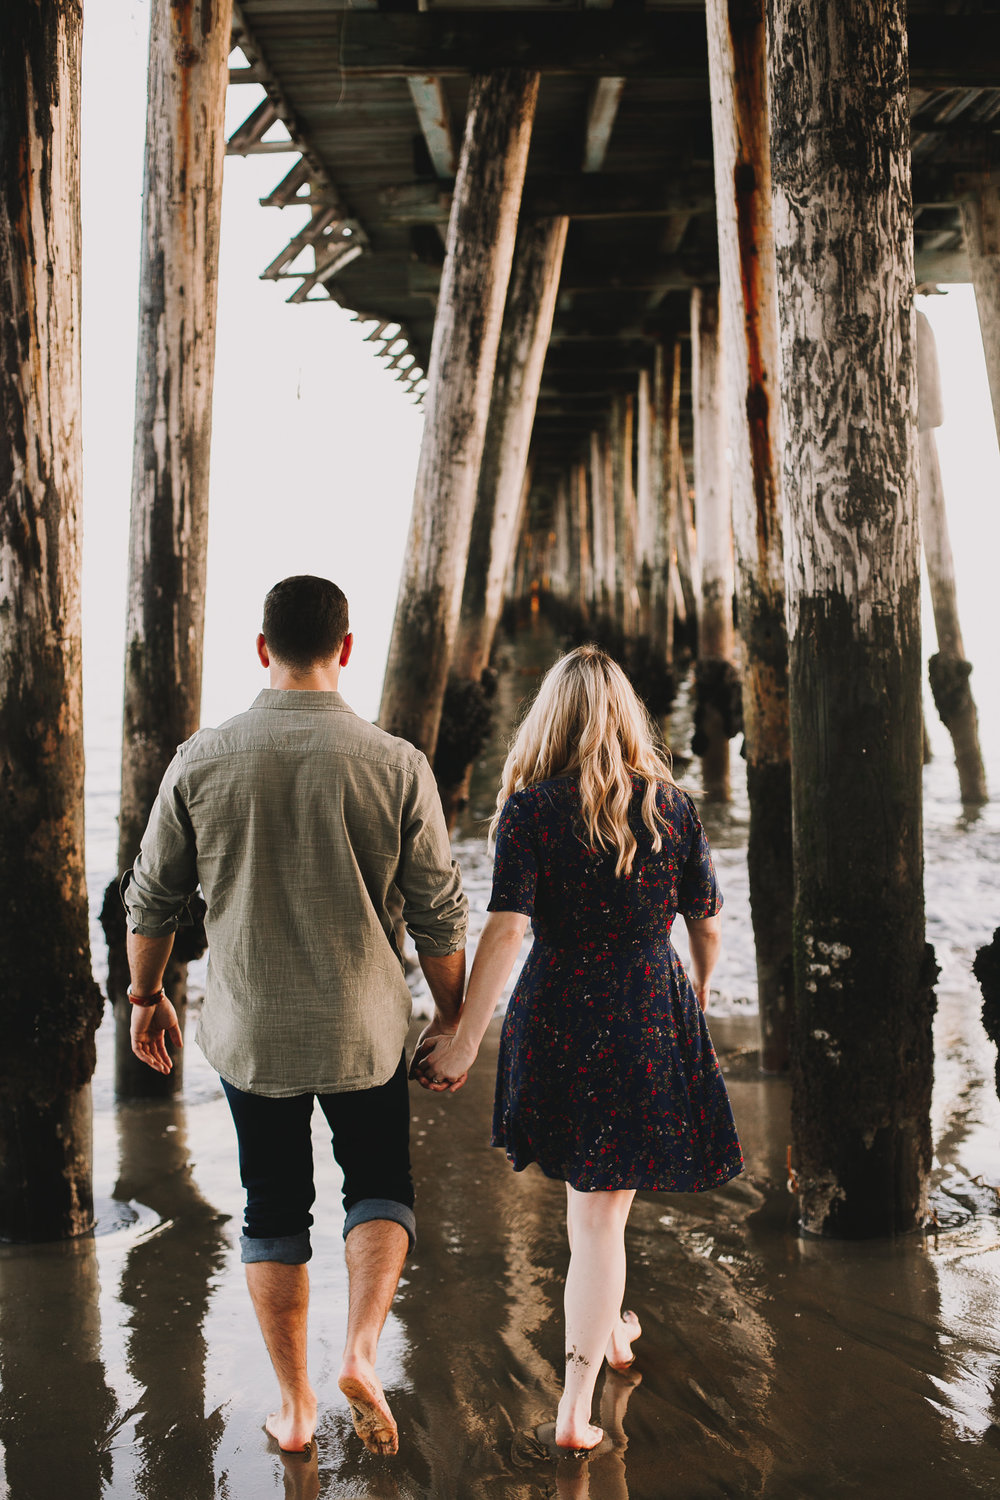 Archer Inspired Photography Capitola Beach Santa Cruz Wedding Engagement Lifestyle Session Photographer-124.jpg